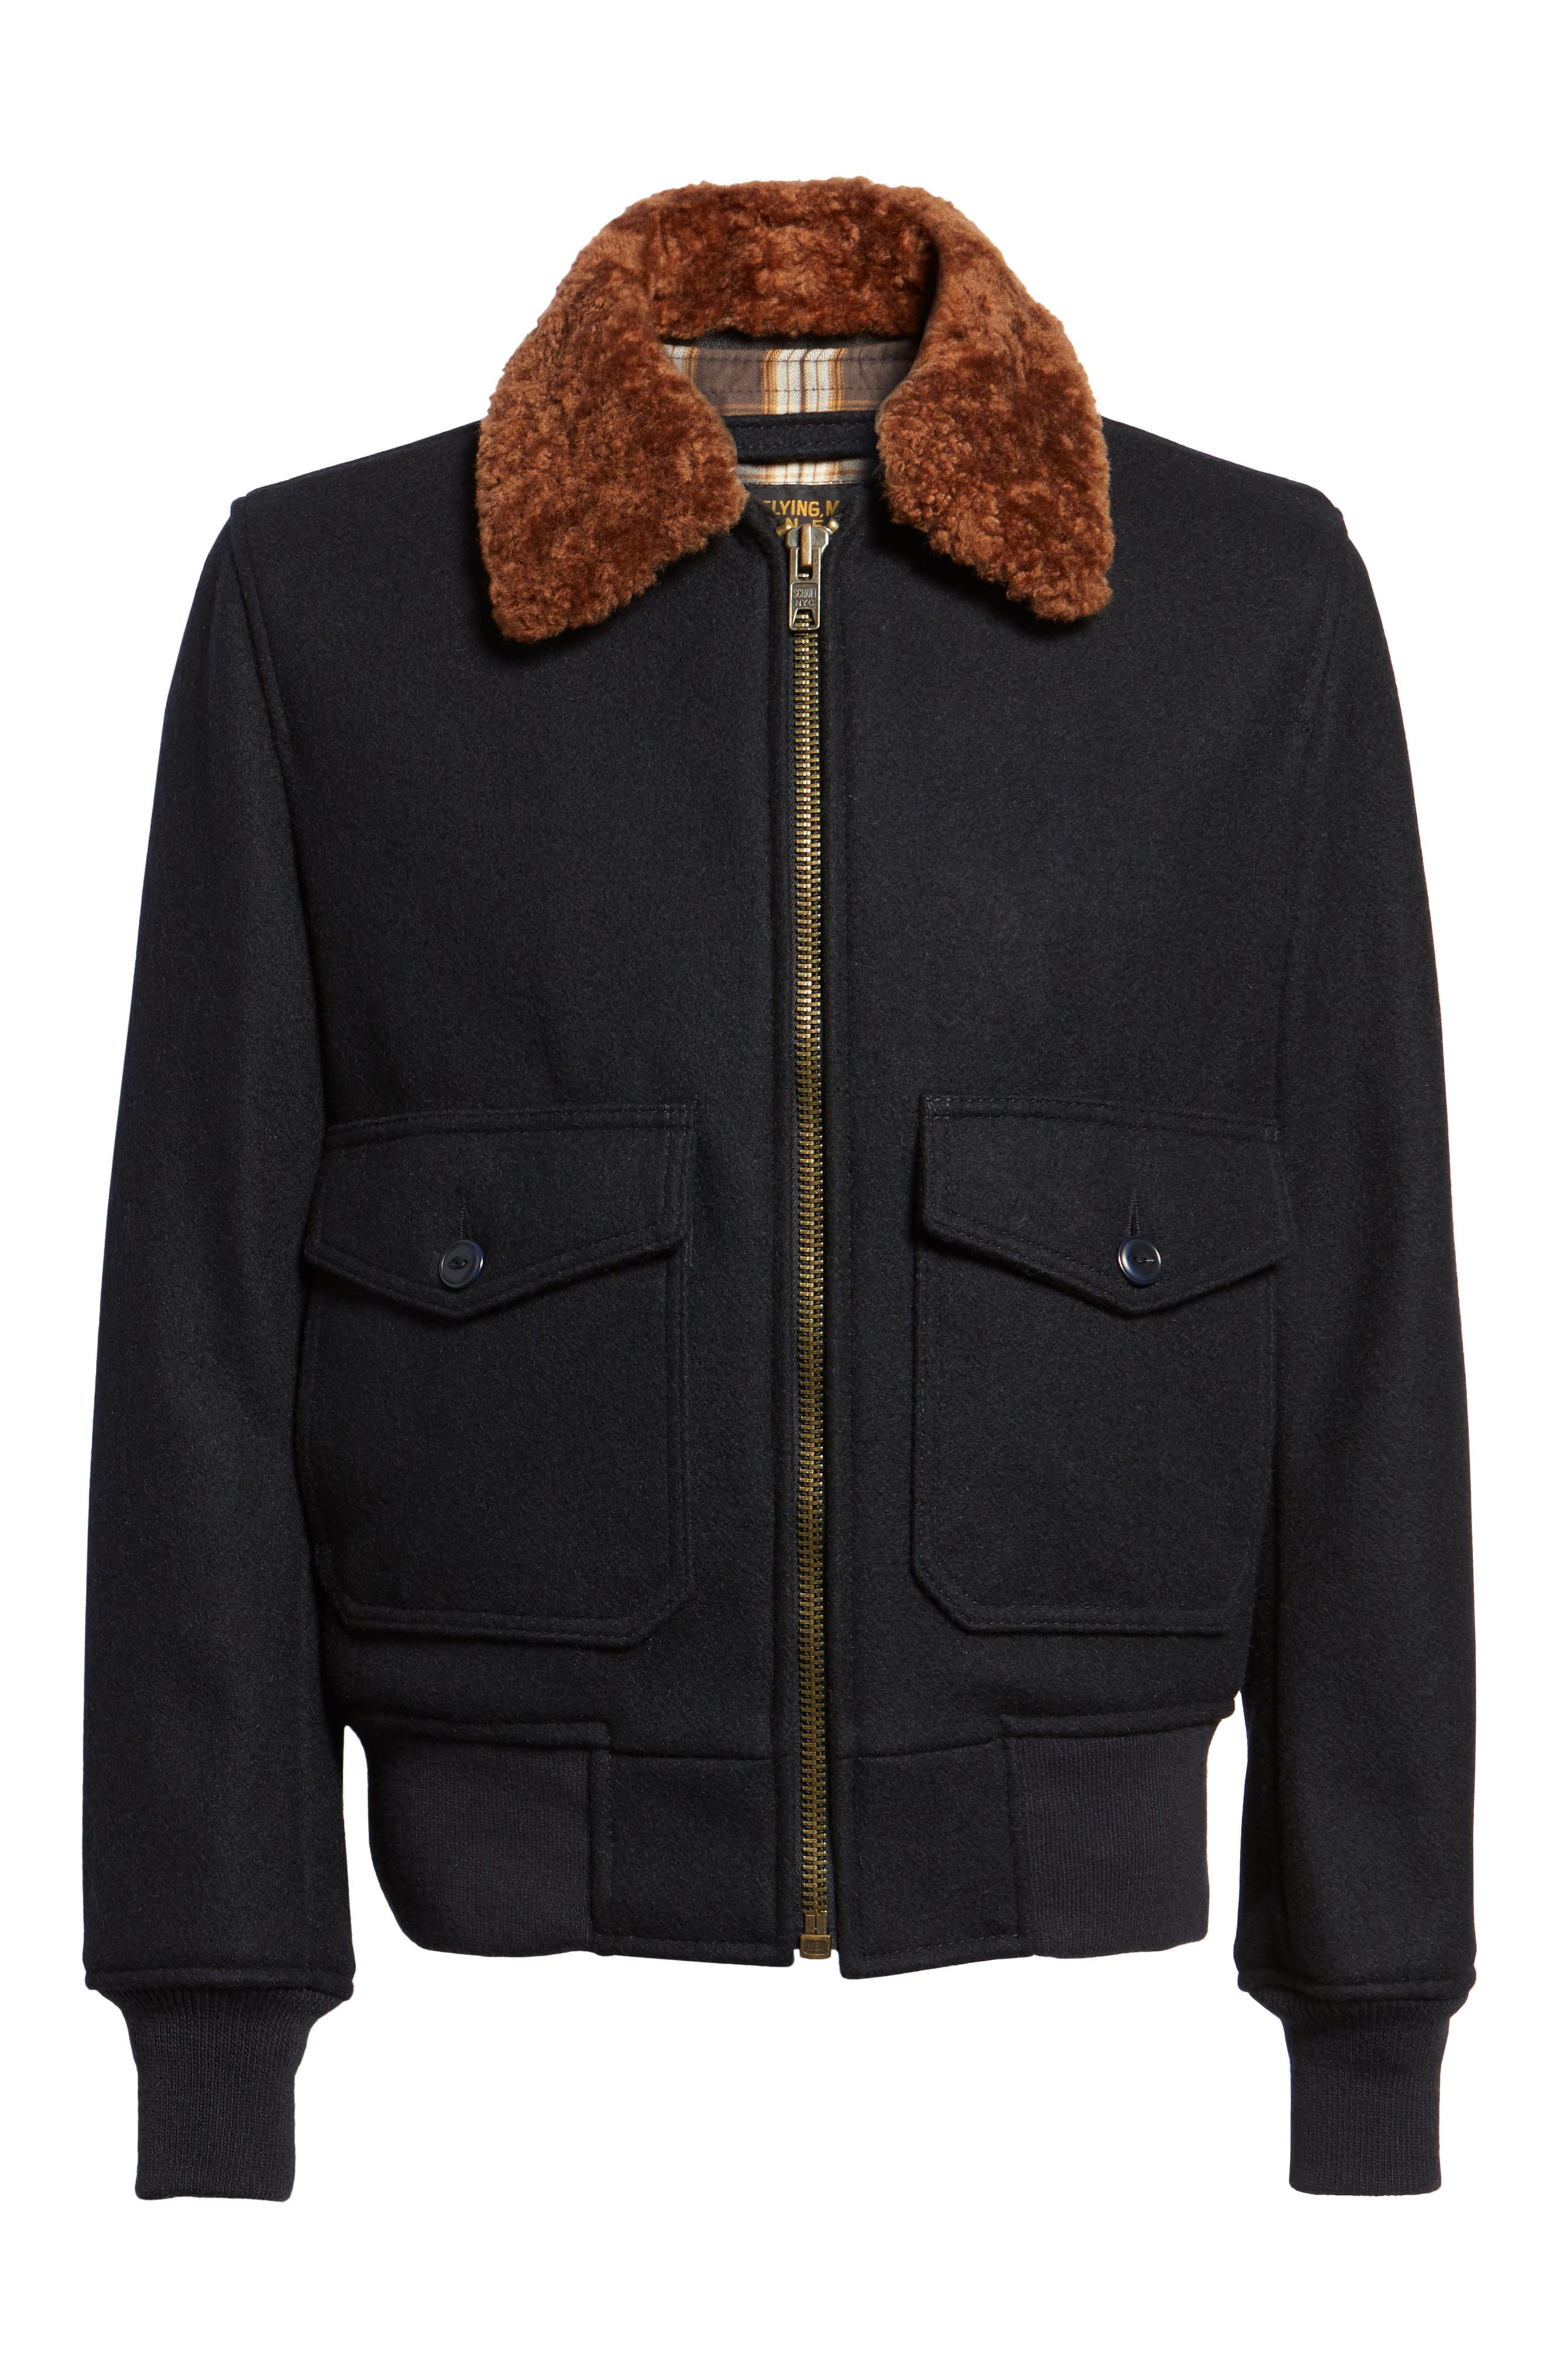 SchottNYC'G-1' Zip Front Bomber with Genuine Shearling Collar,                             Alternate thumbnail 6, color,                             410